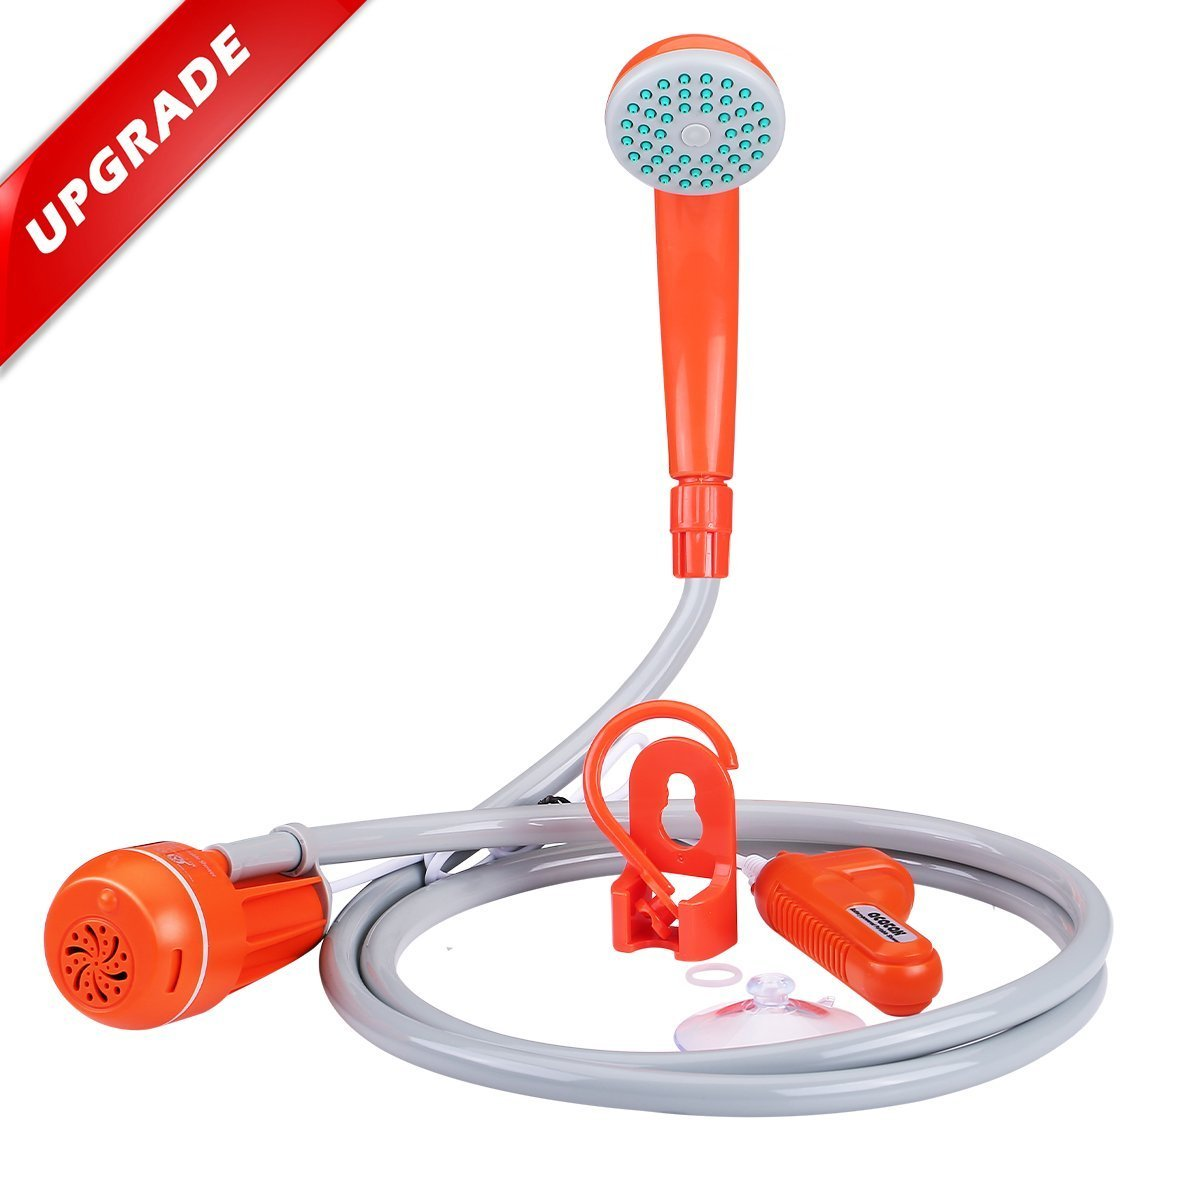 Portable Camping Shower,Acetek Upgraded USB Rechargeable Battery Powered Outdoor Handheld Shower with 2200mAh Battery Pack, 200cm Hose Shower Head for Outdoor Backpacking Travel, Camping, Hiking,Garde